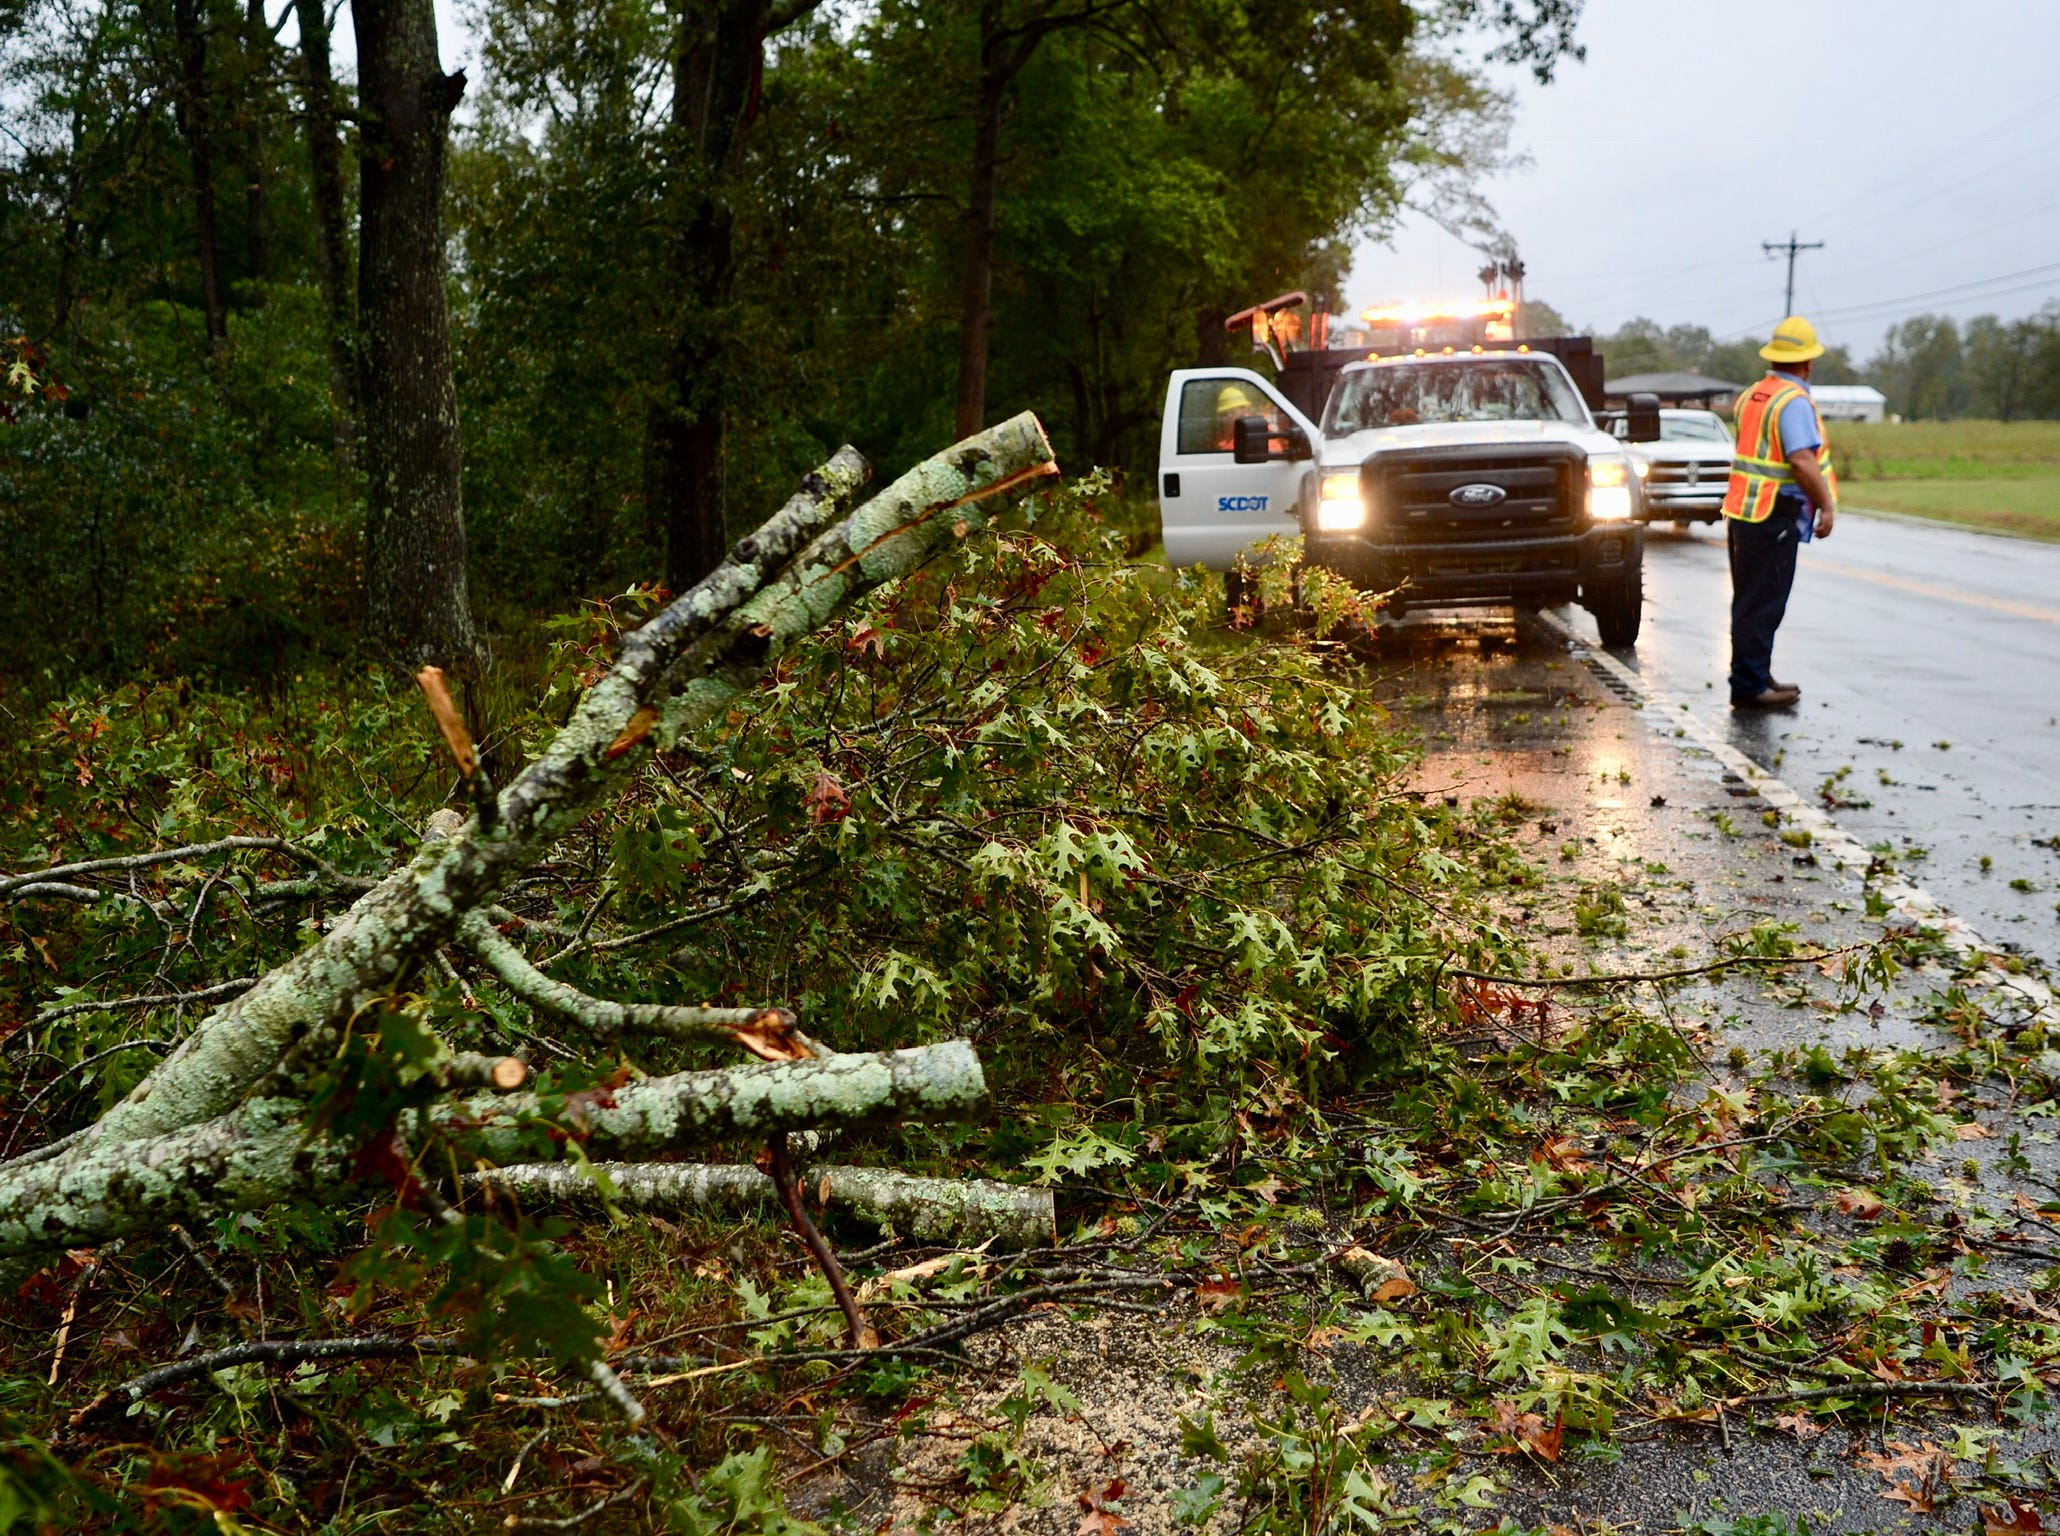 SCDOT worker Chris Barrick at the scene of a downed tree on US 29 and Dorchester Road in Anderson on Thursday, Oct. 11, 2018, following heavy rain triggered by Tropical Storm Michael.